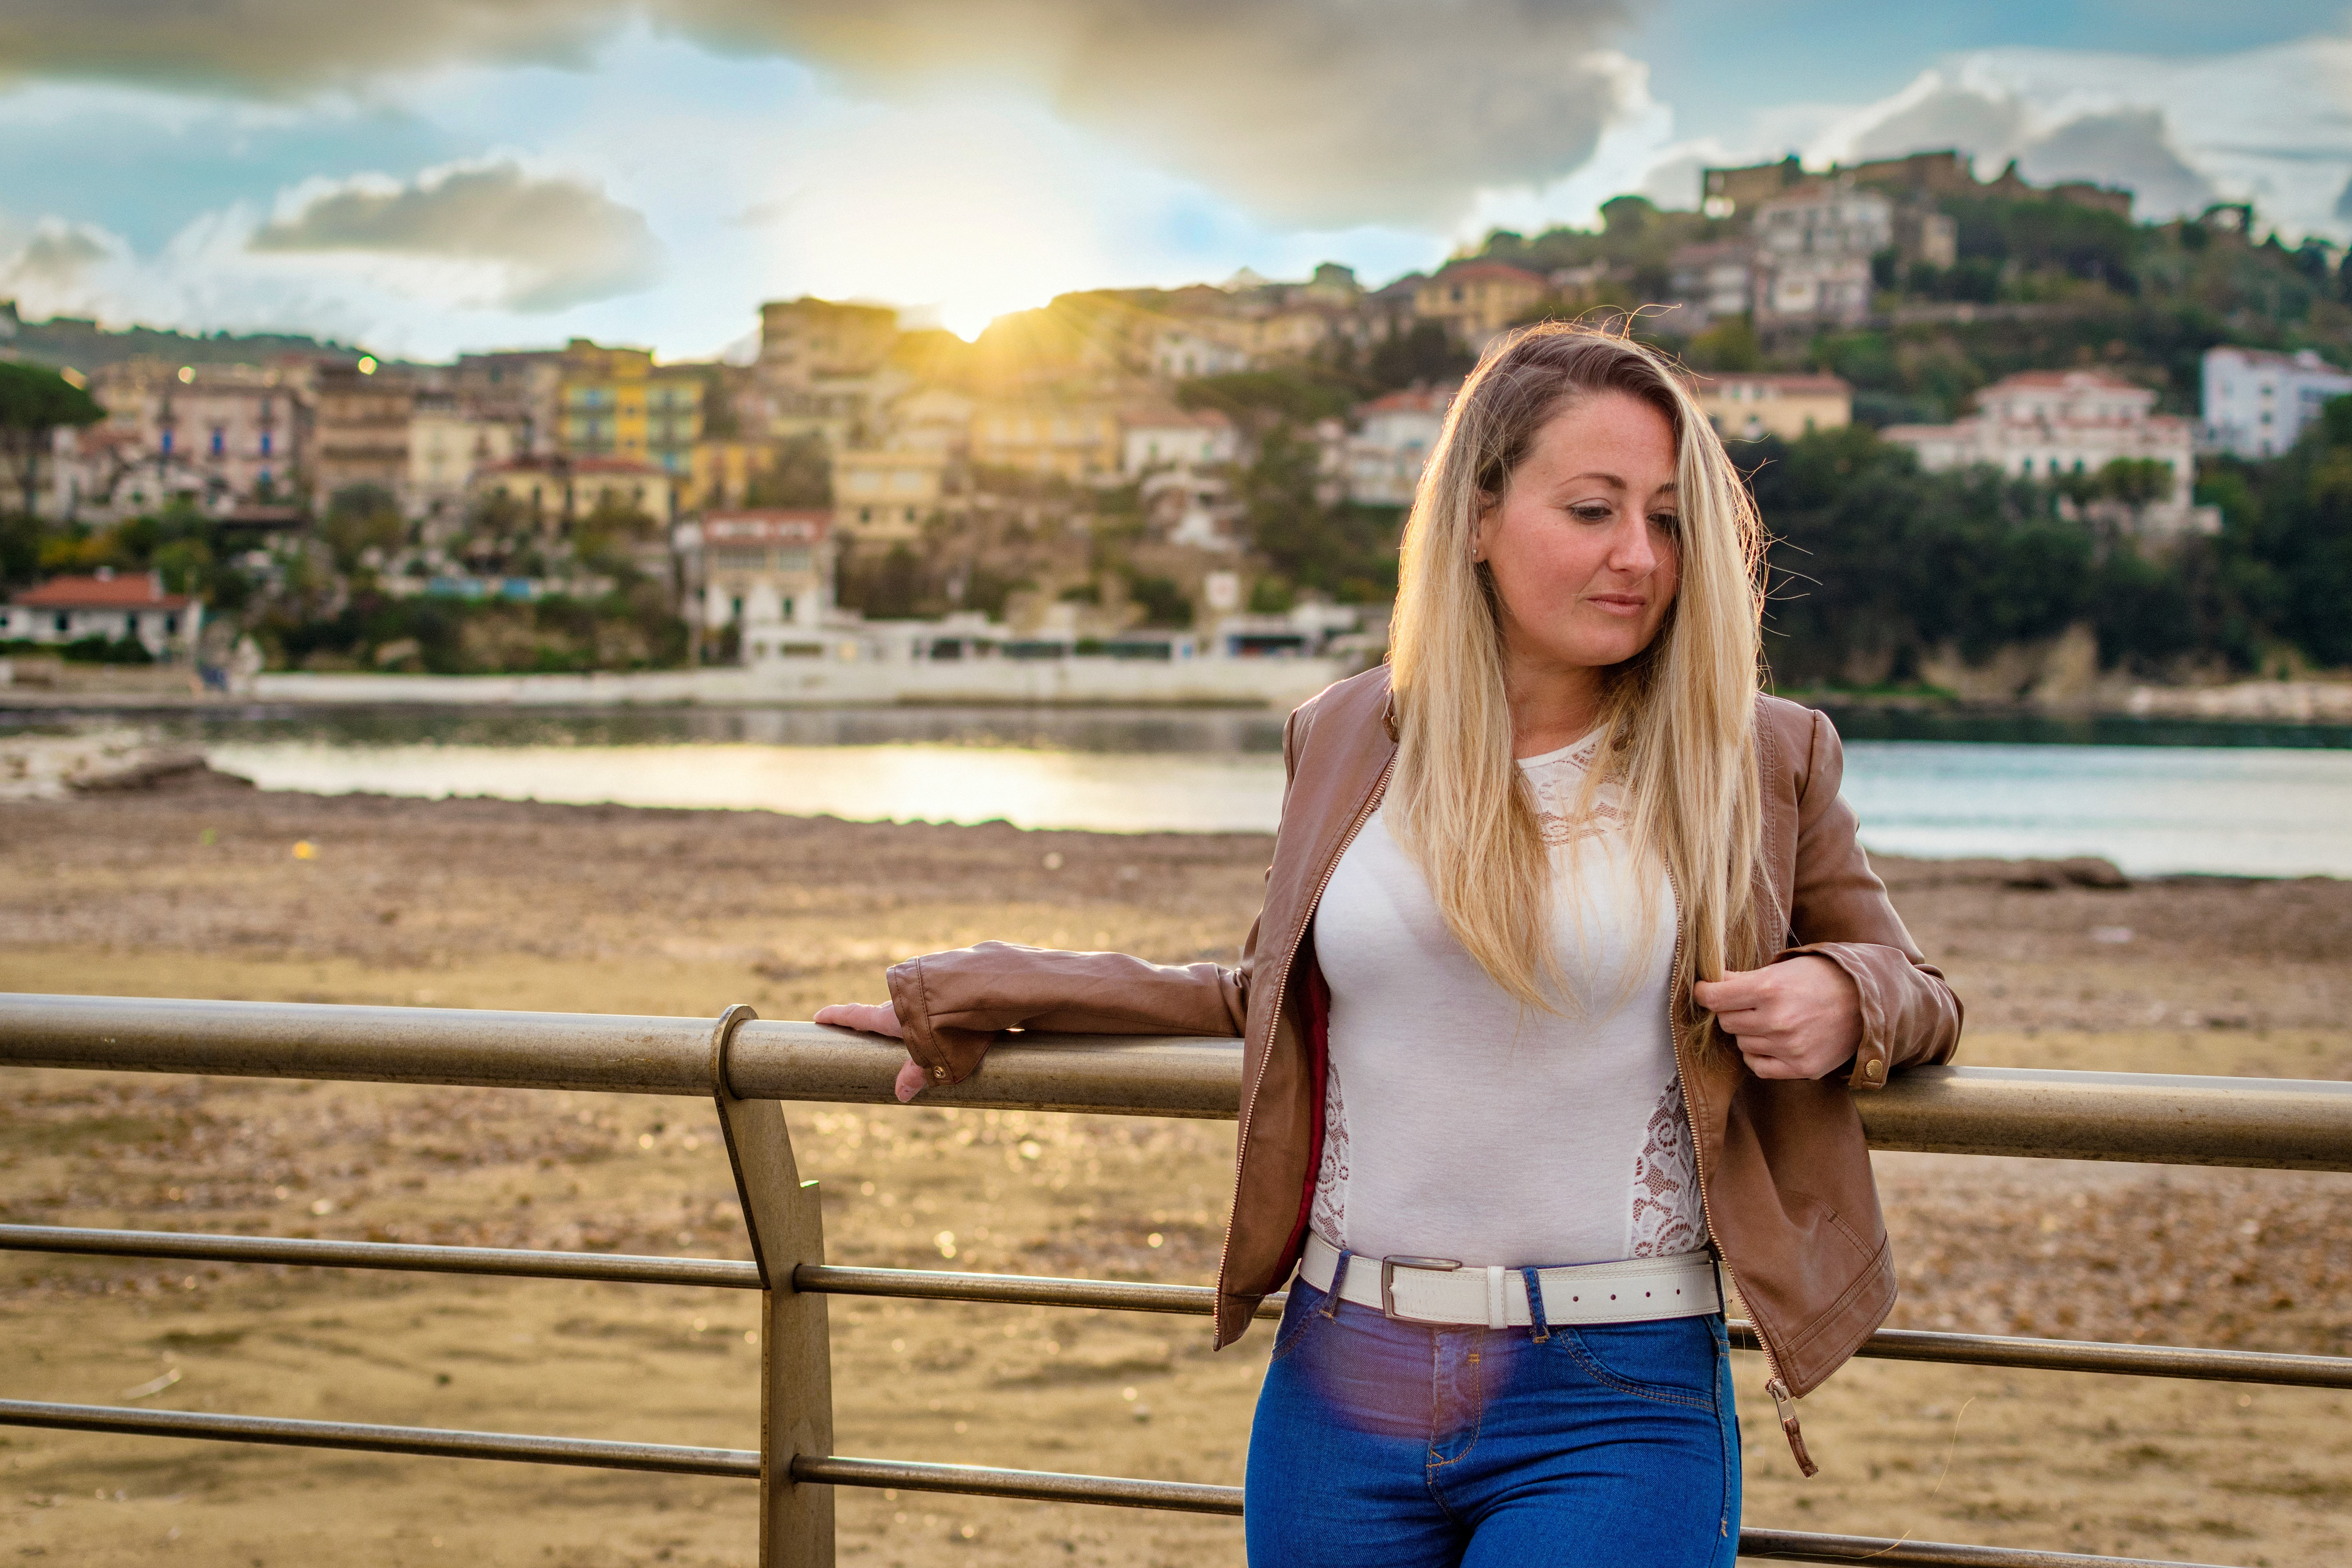 woman leaning on bridge rail in front of buildings